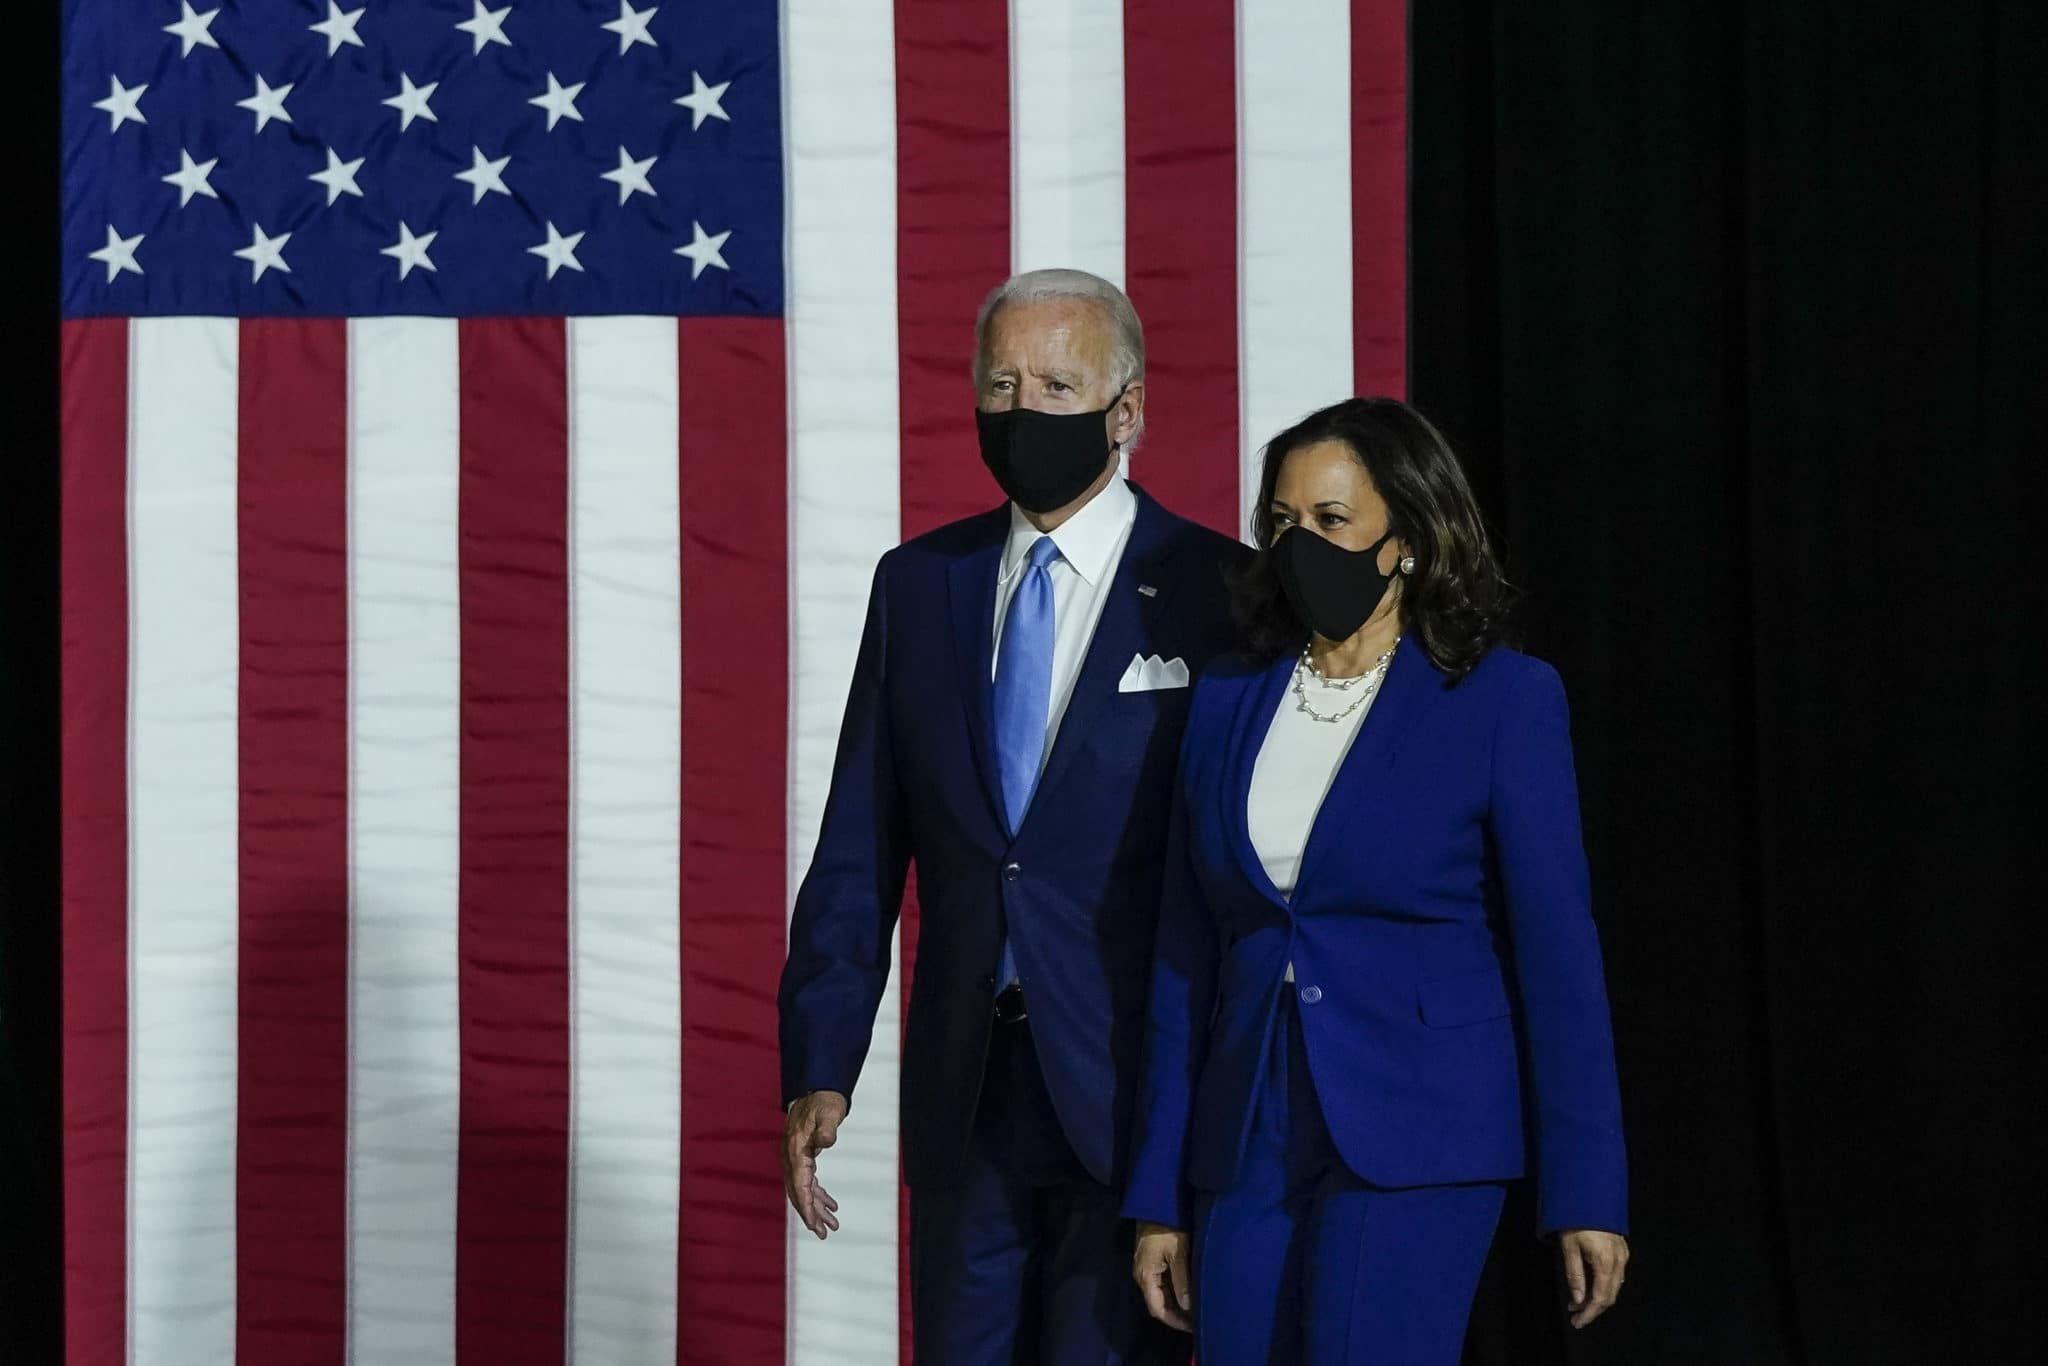 Election platform: LGBT+ rights were a plank of Joe Biden and Kamala Harris campaign pledges. (Drew Angerer/Getty Images)